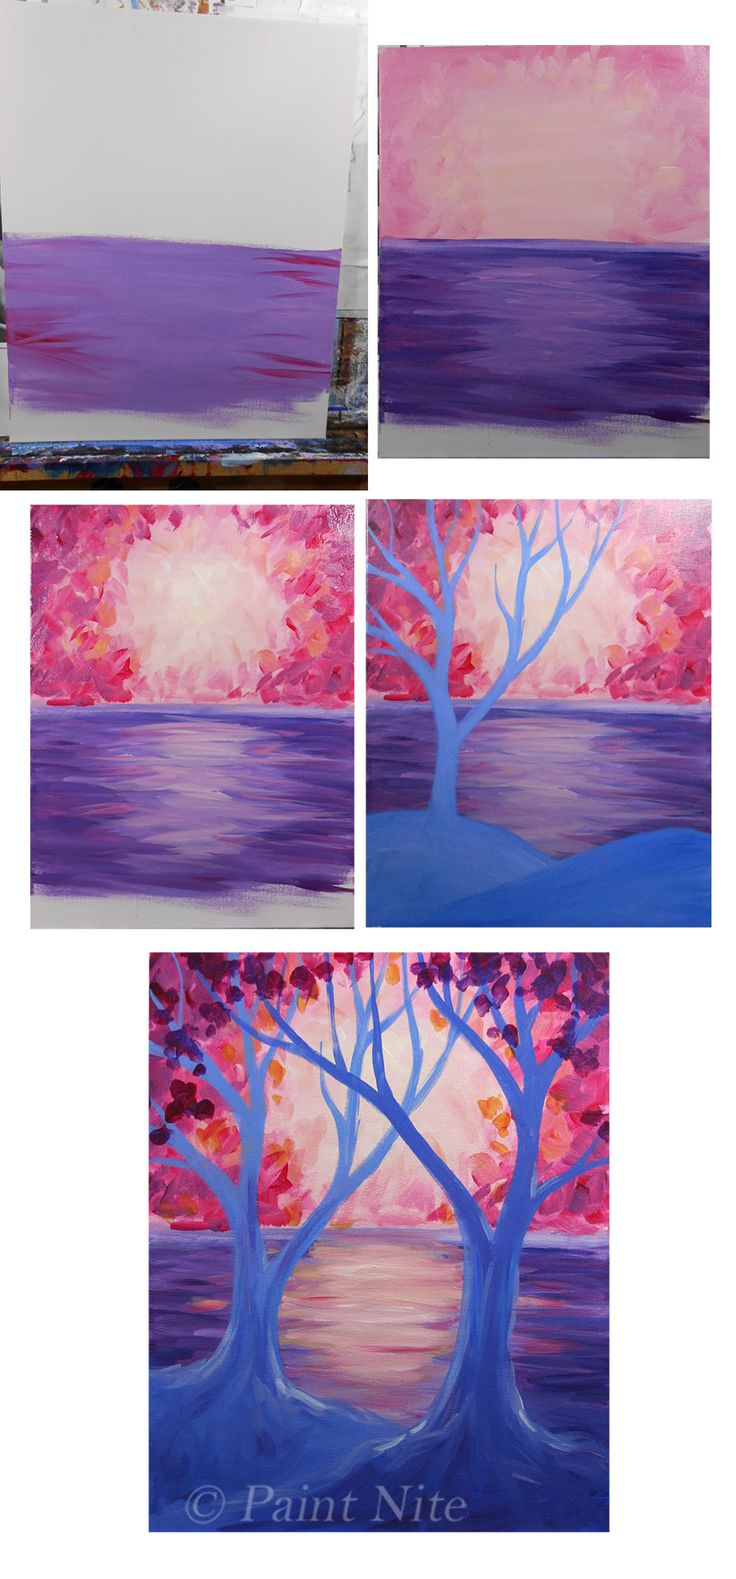 good paint night images